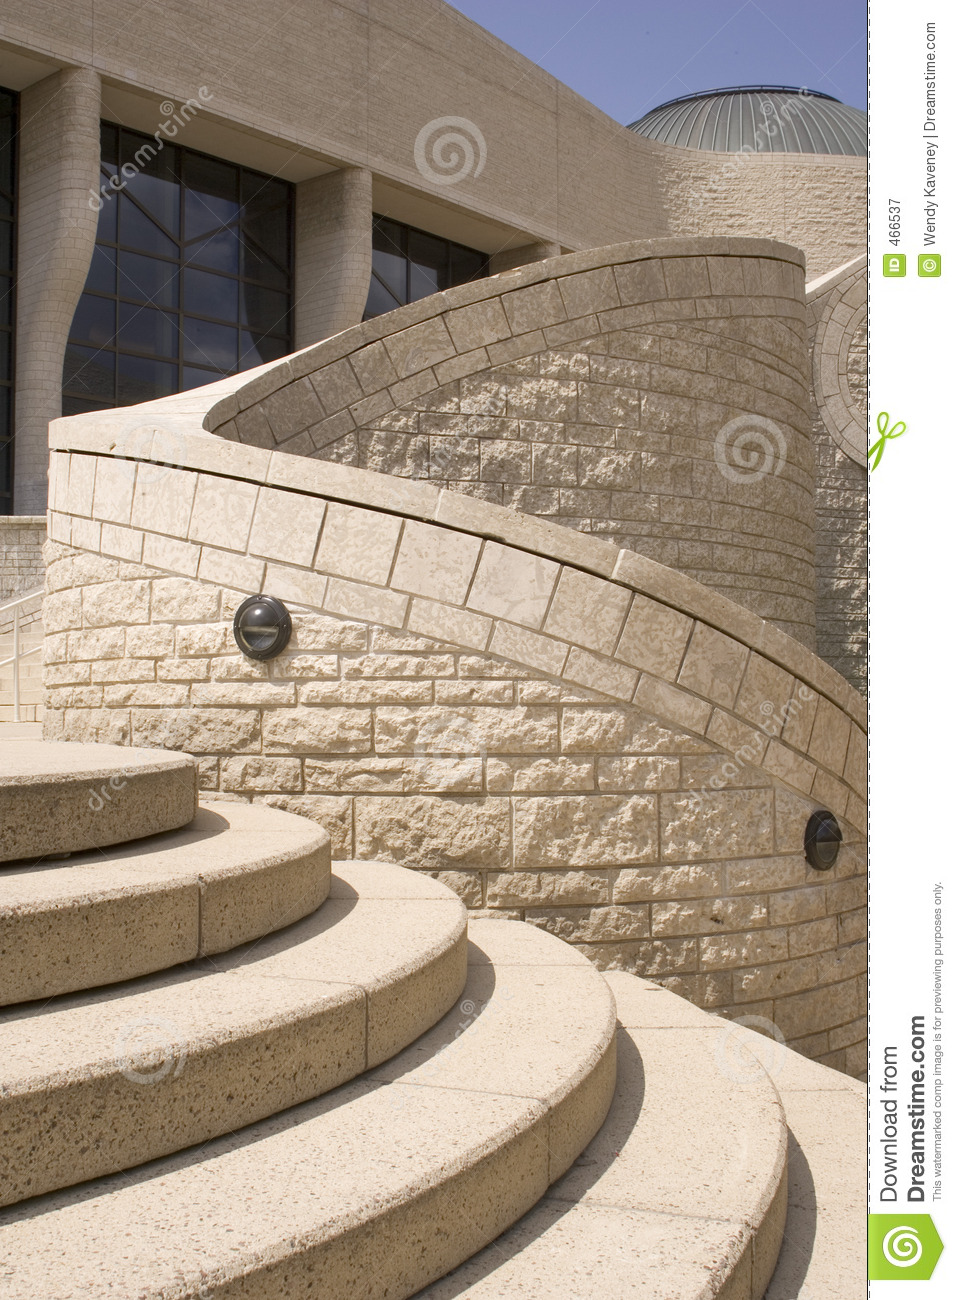 Curved Architecture Curved Architecture Royalty Free Stock Photography Image 466537